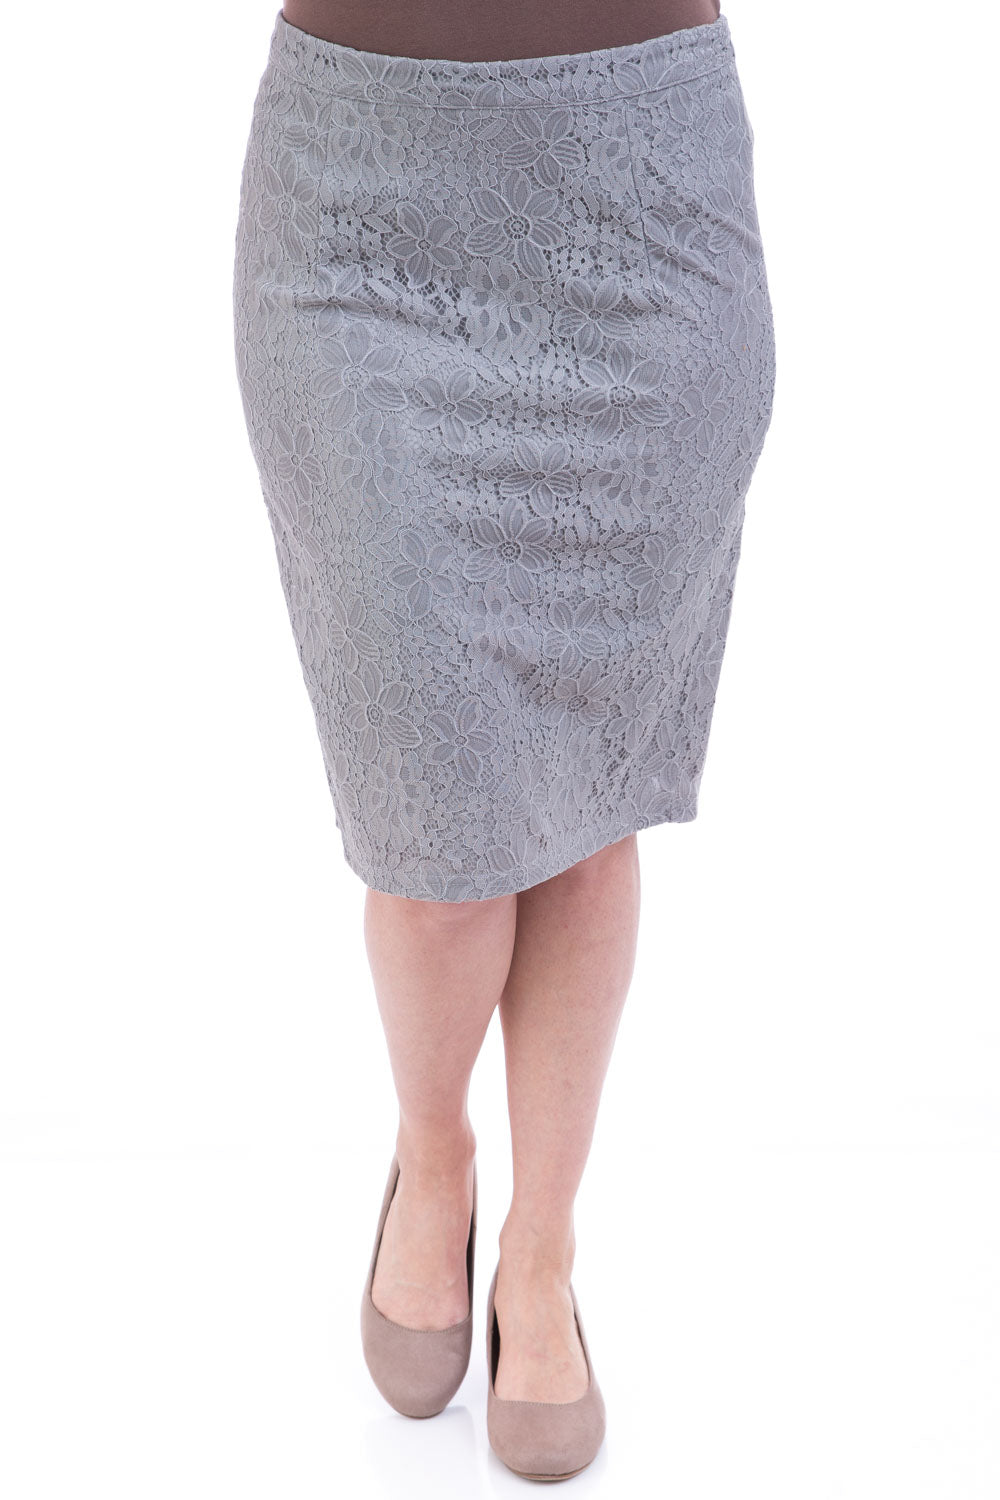 Type 2 Graceful Lace Pencil Skirt